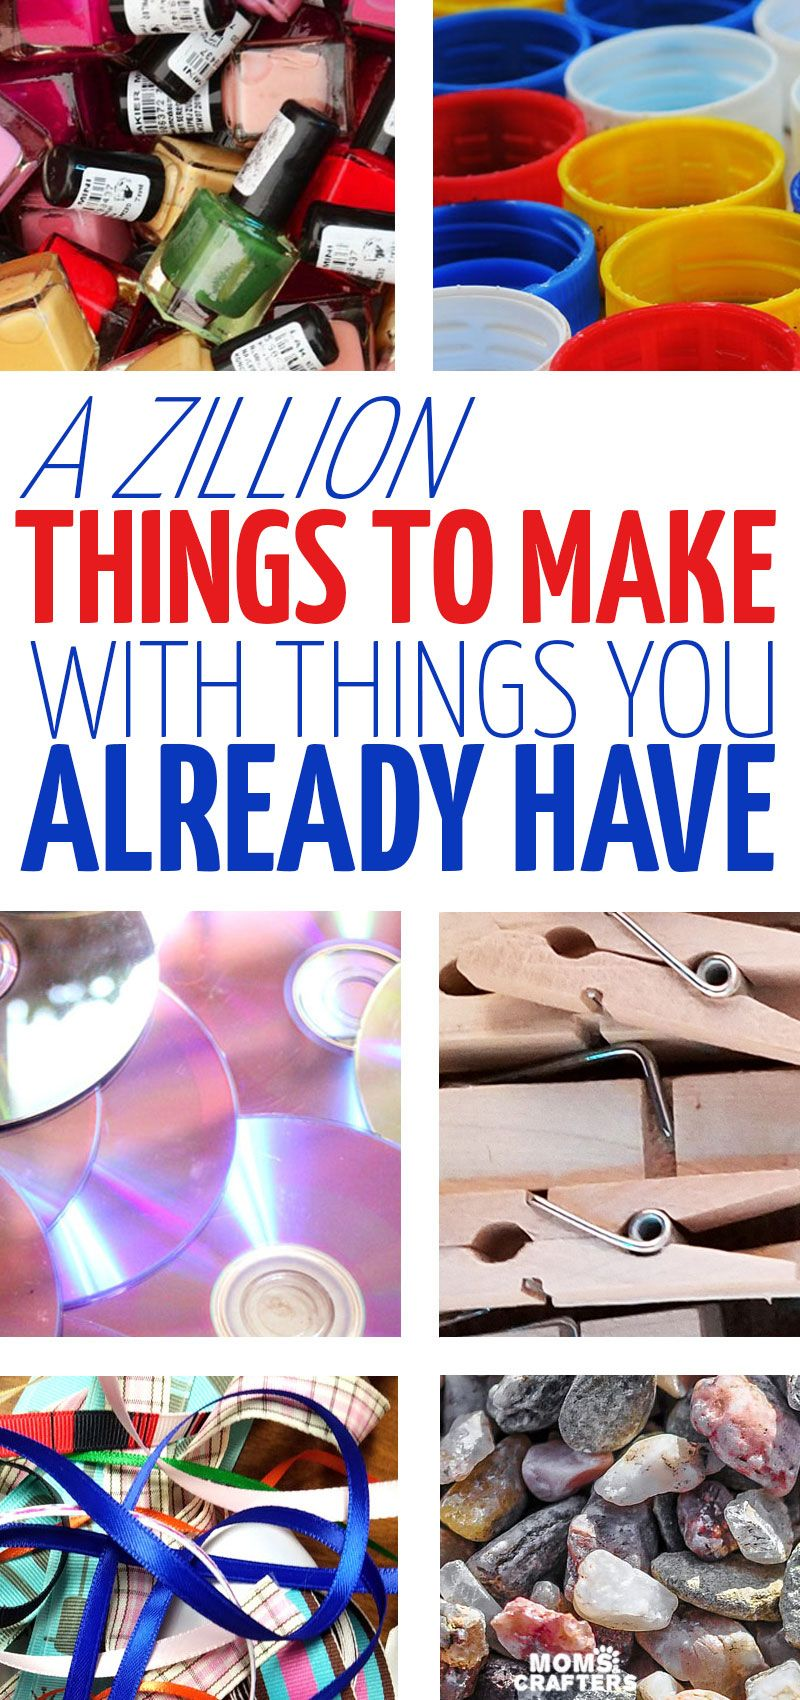 A Zillion things to make #recycledcrafts